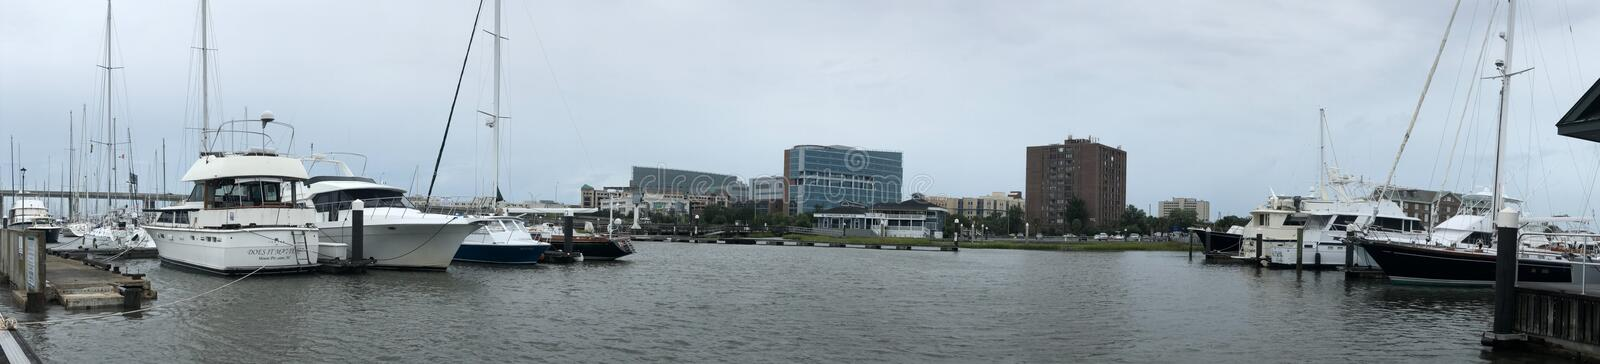 Panoramic View of Safe Harbor Charleston City Prior to Arrival of Hurricane Dorian.  stock images